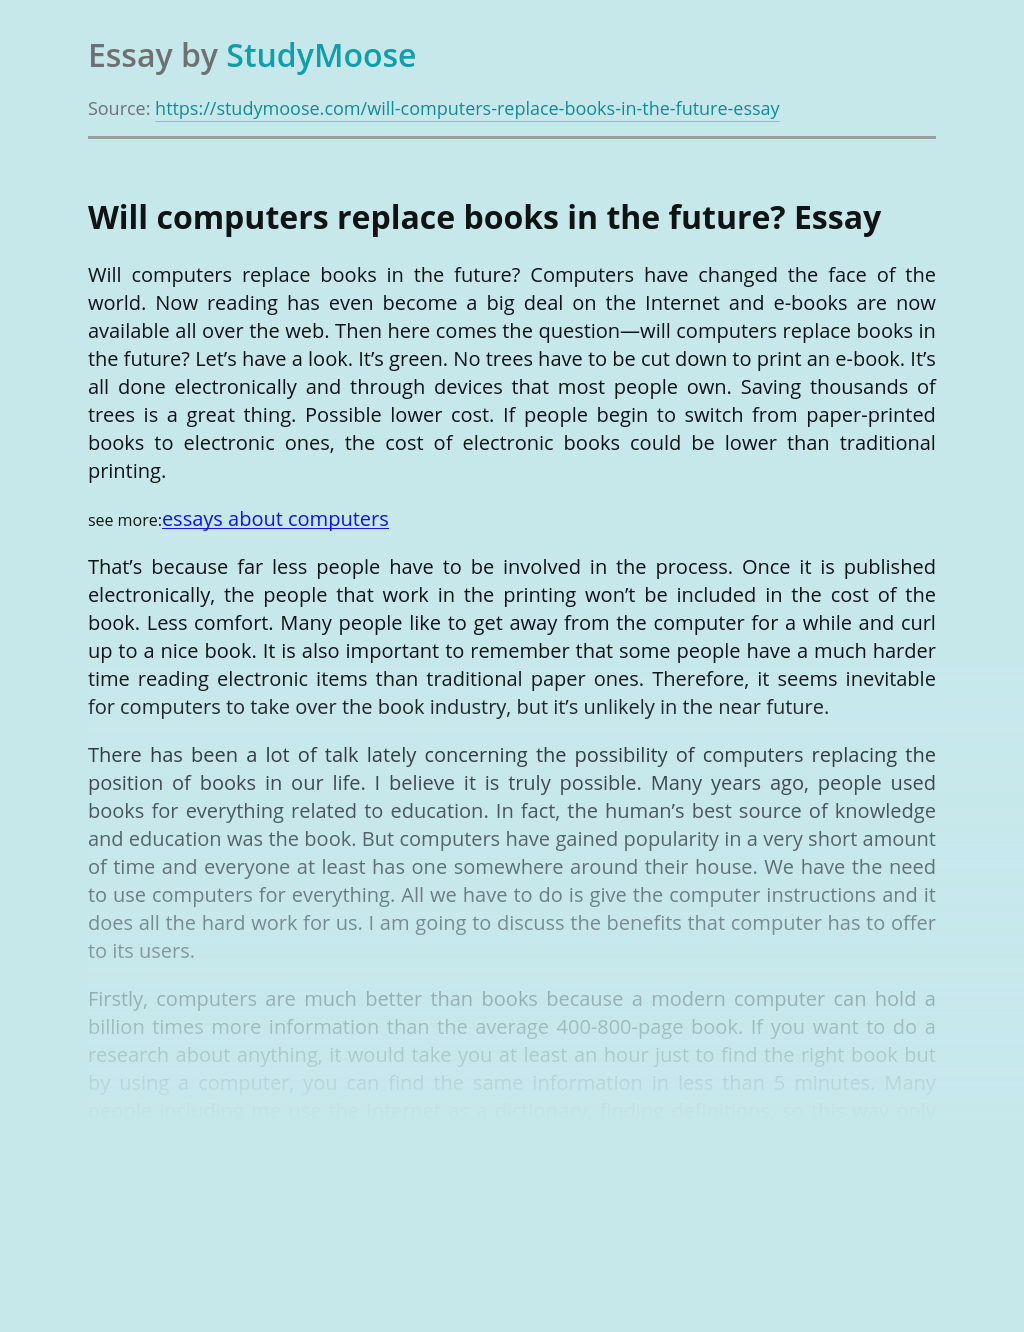 Will computers replace books in the future?